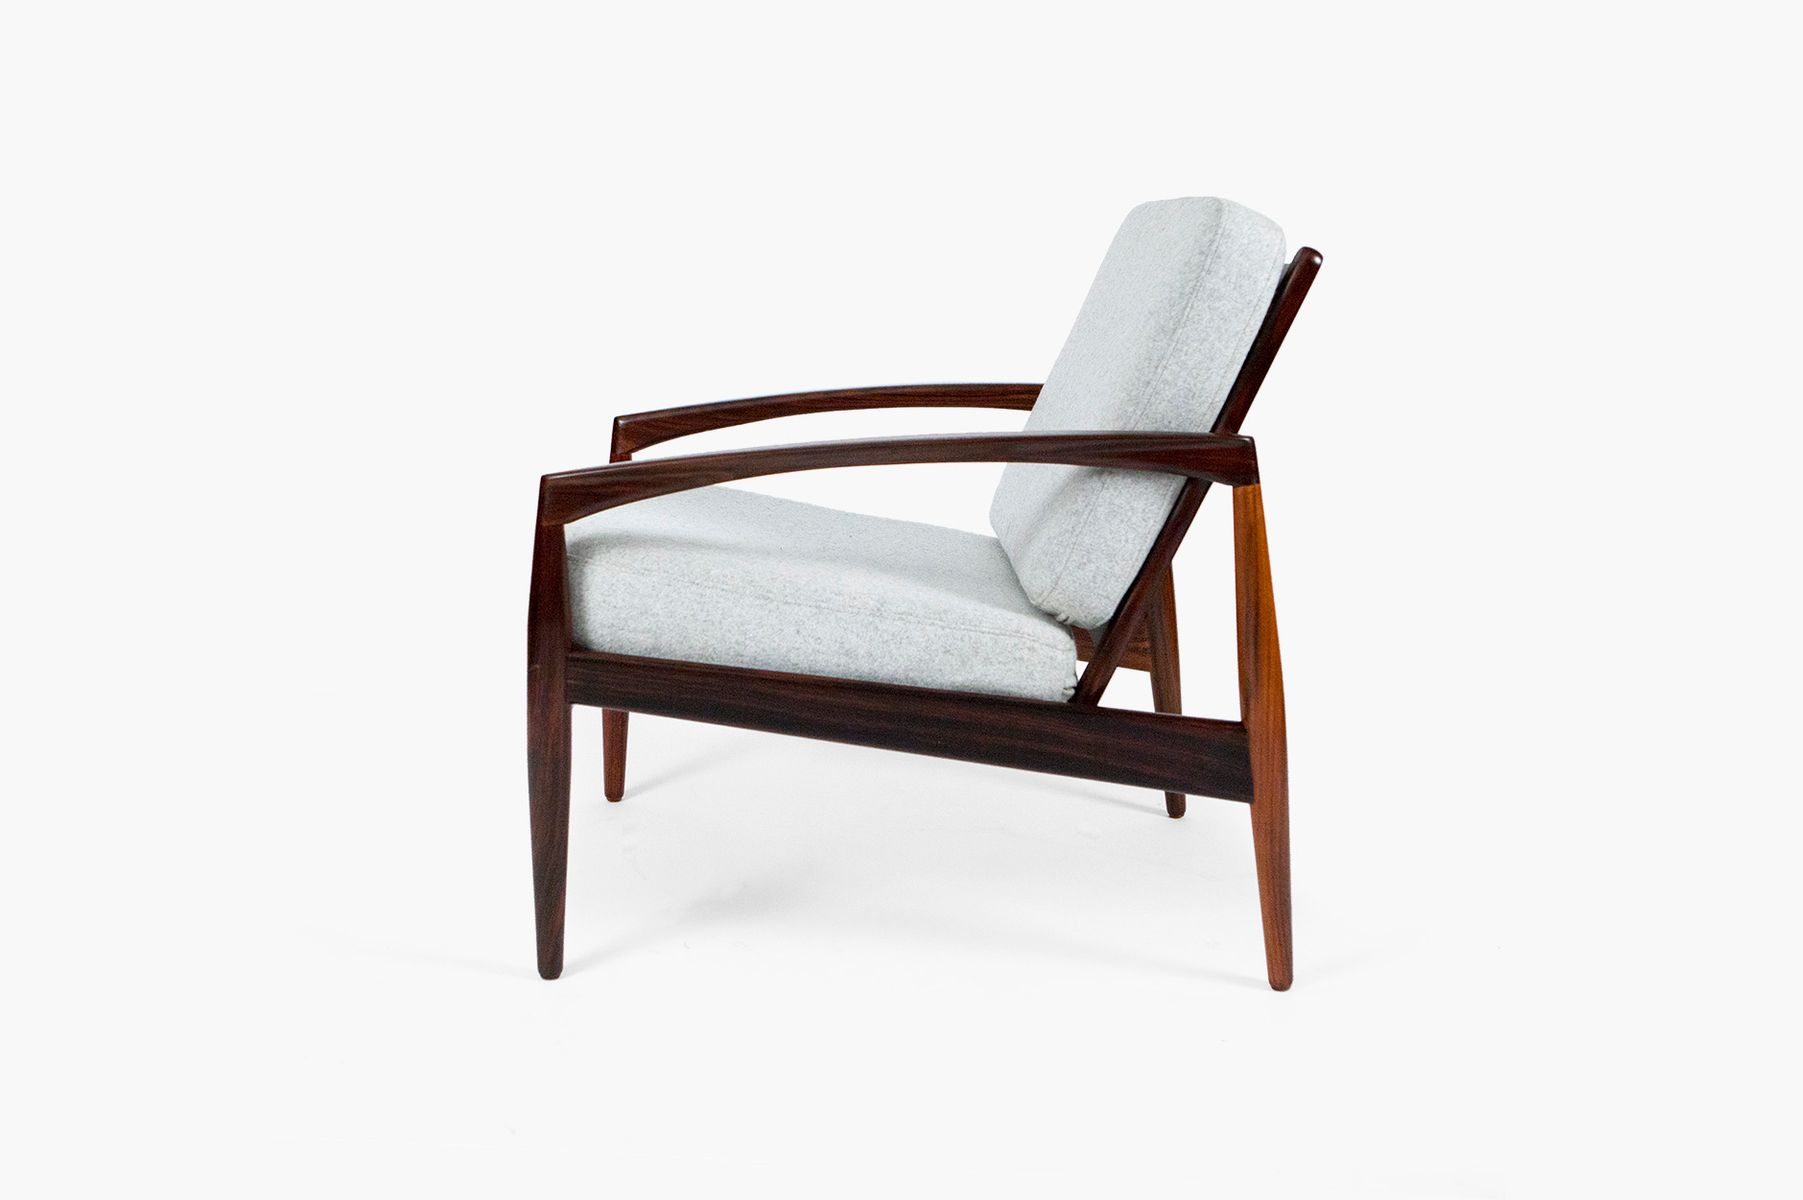 Paper knife lounge chair by kai kristiansen for magnus olesen 1950s for sale at pamono - Kai kristiansen chairs ...